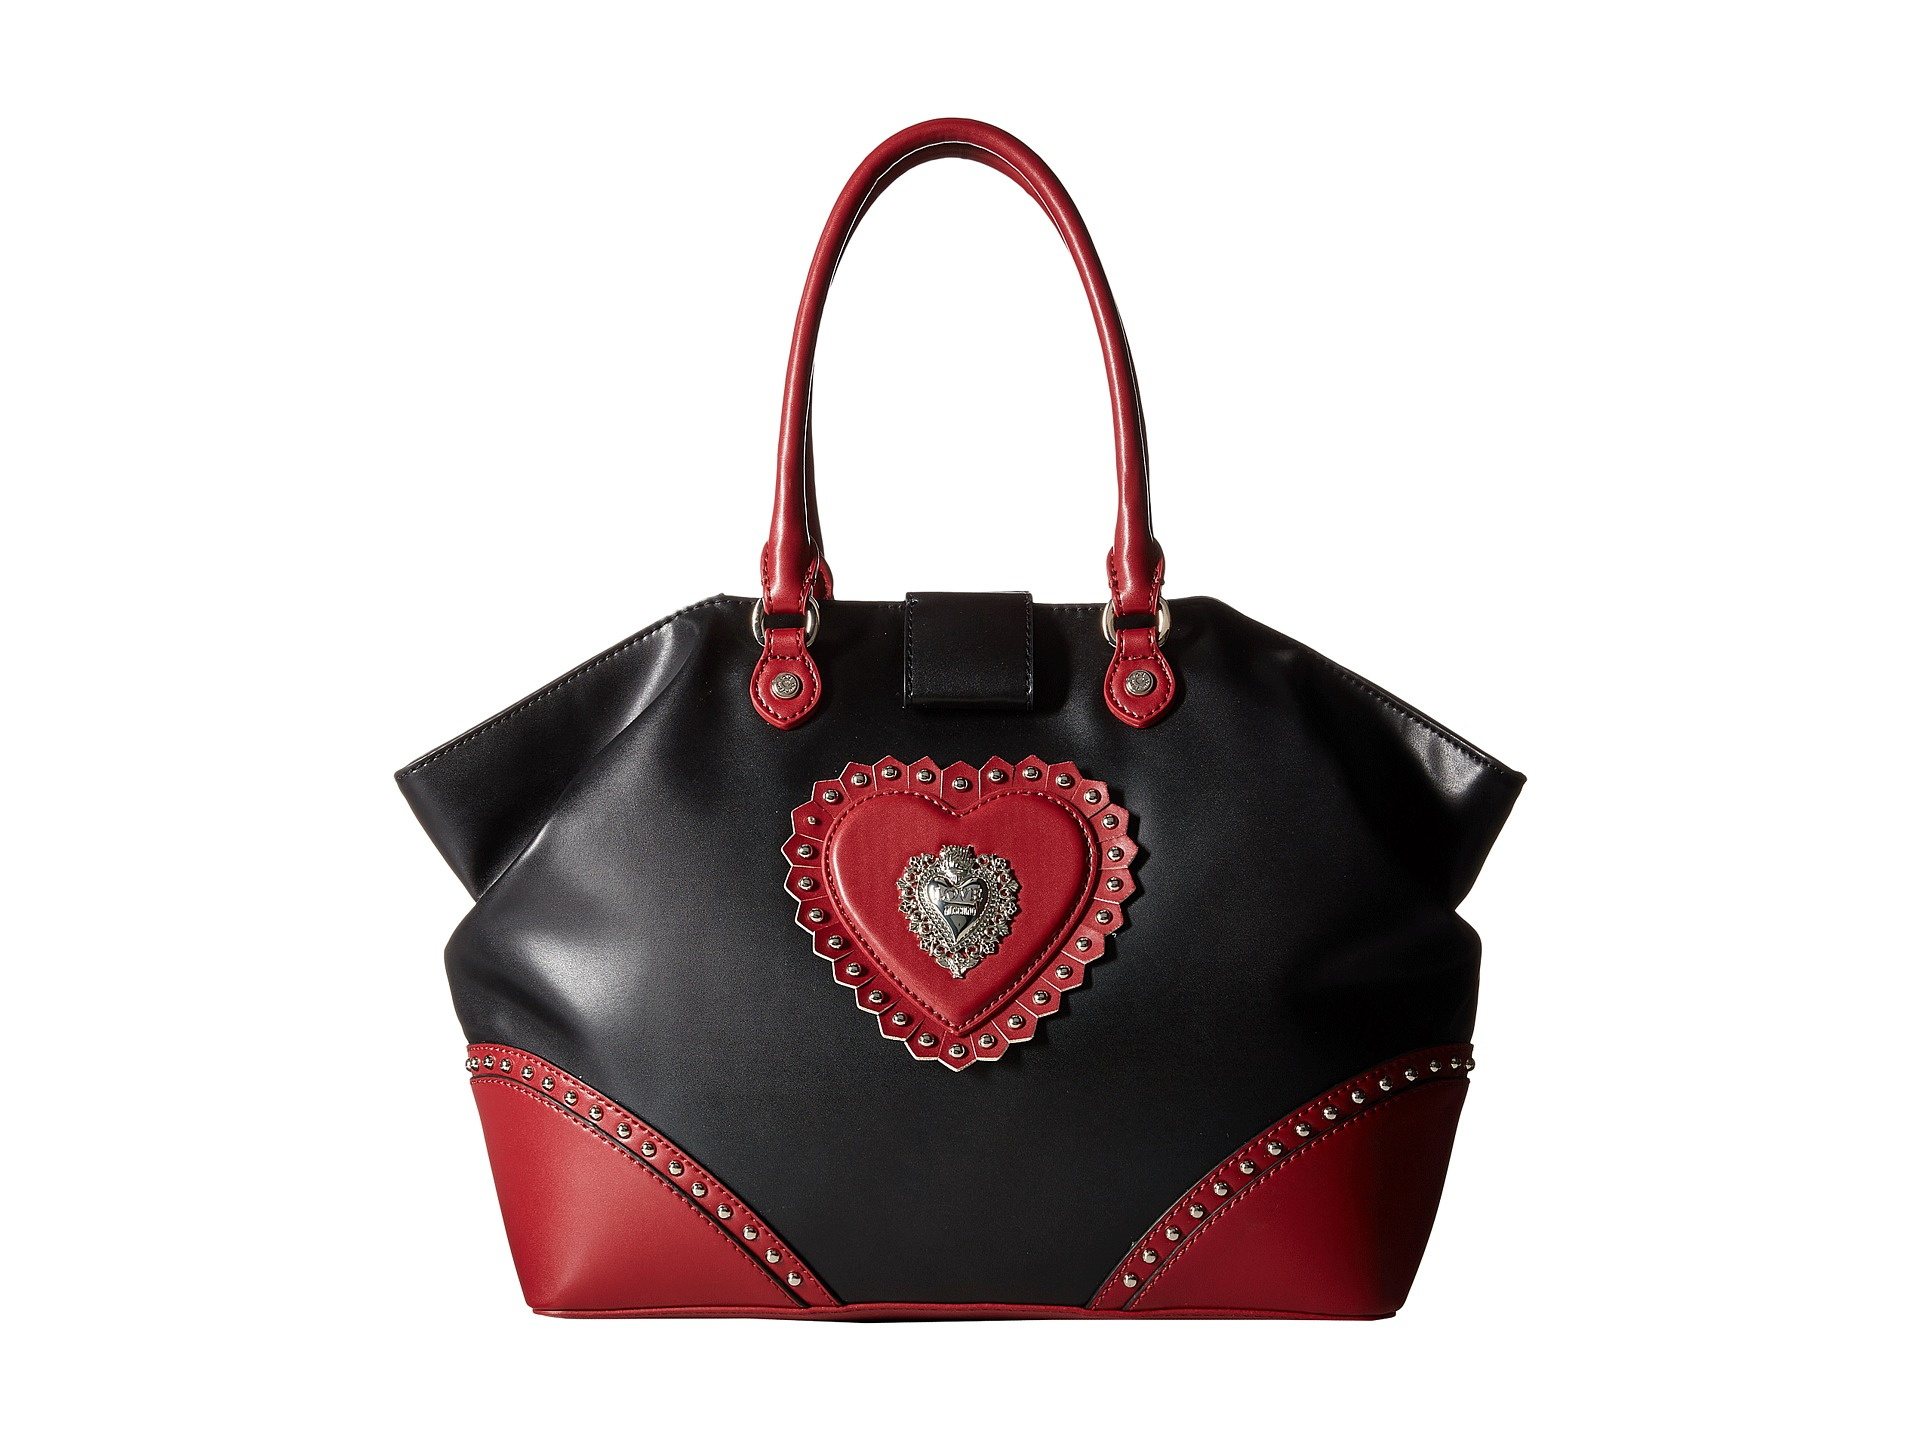 c3df2835b9bb3 Lyst - Love Moschino Studded Tote Bag in Red